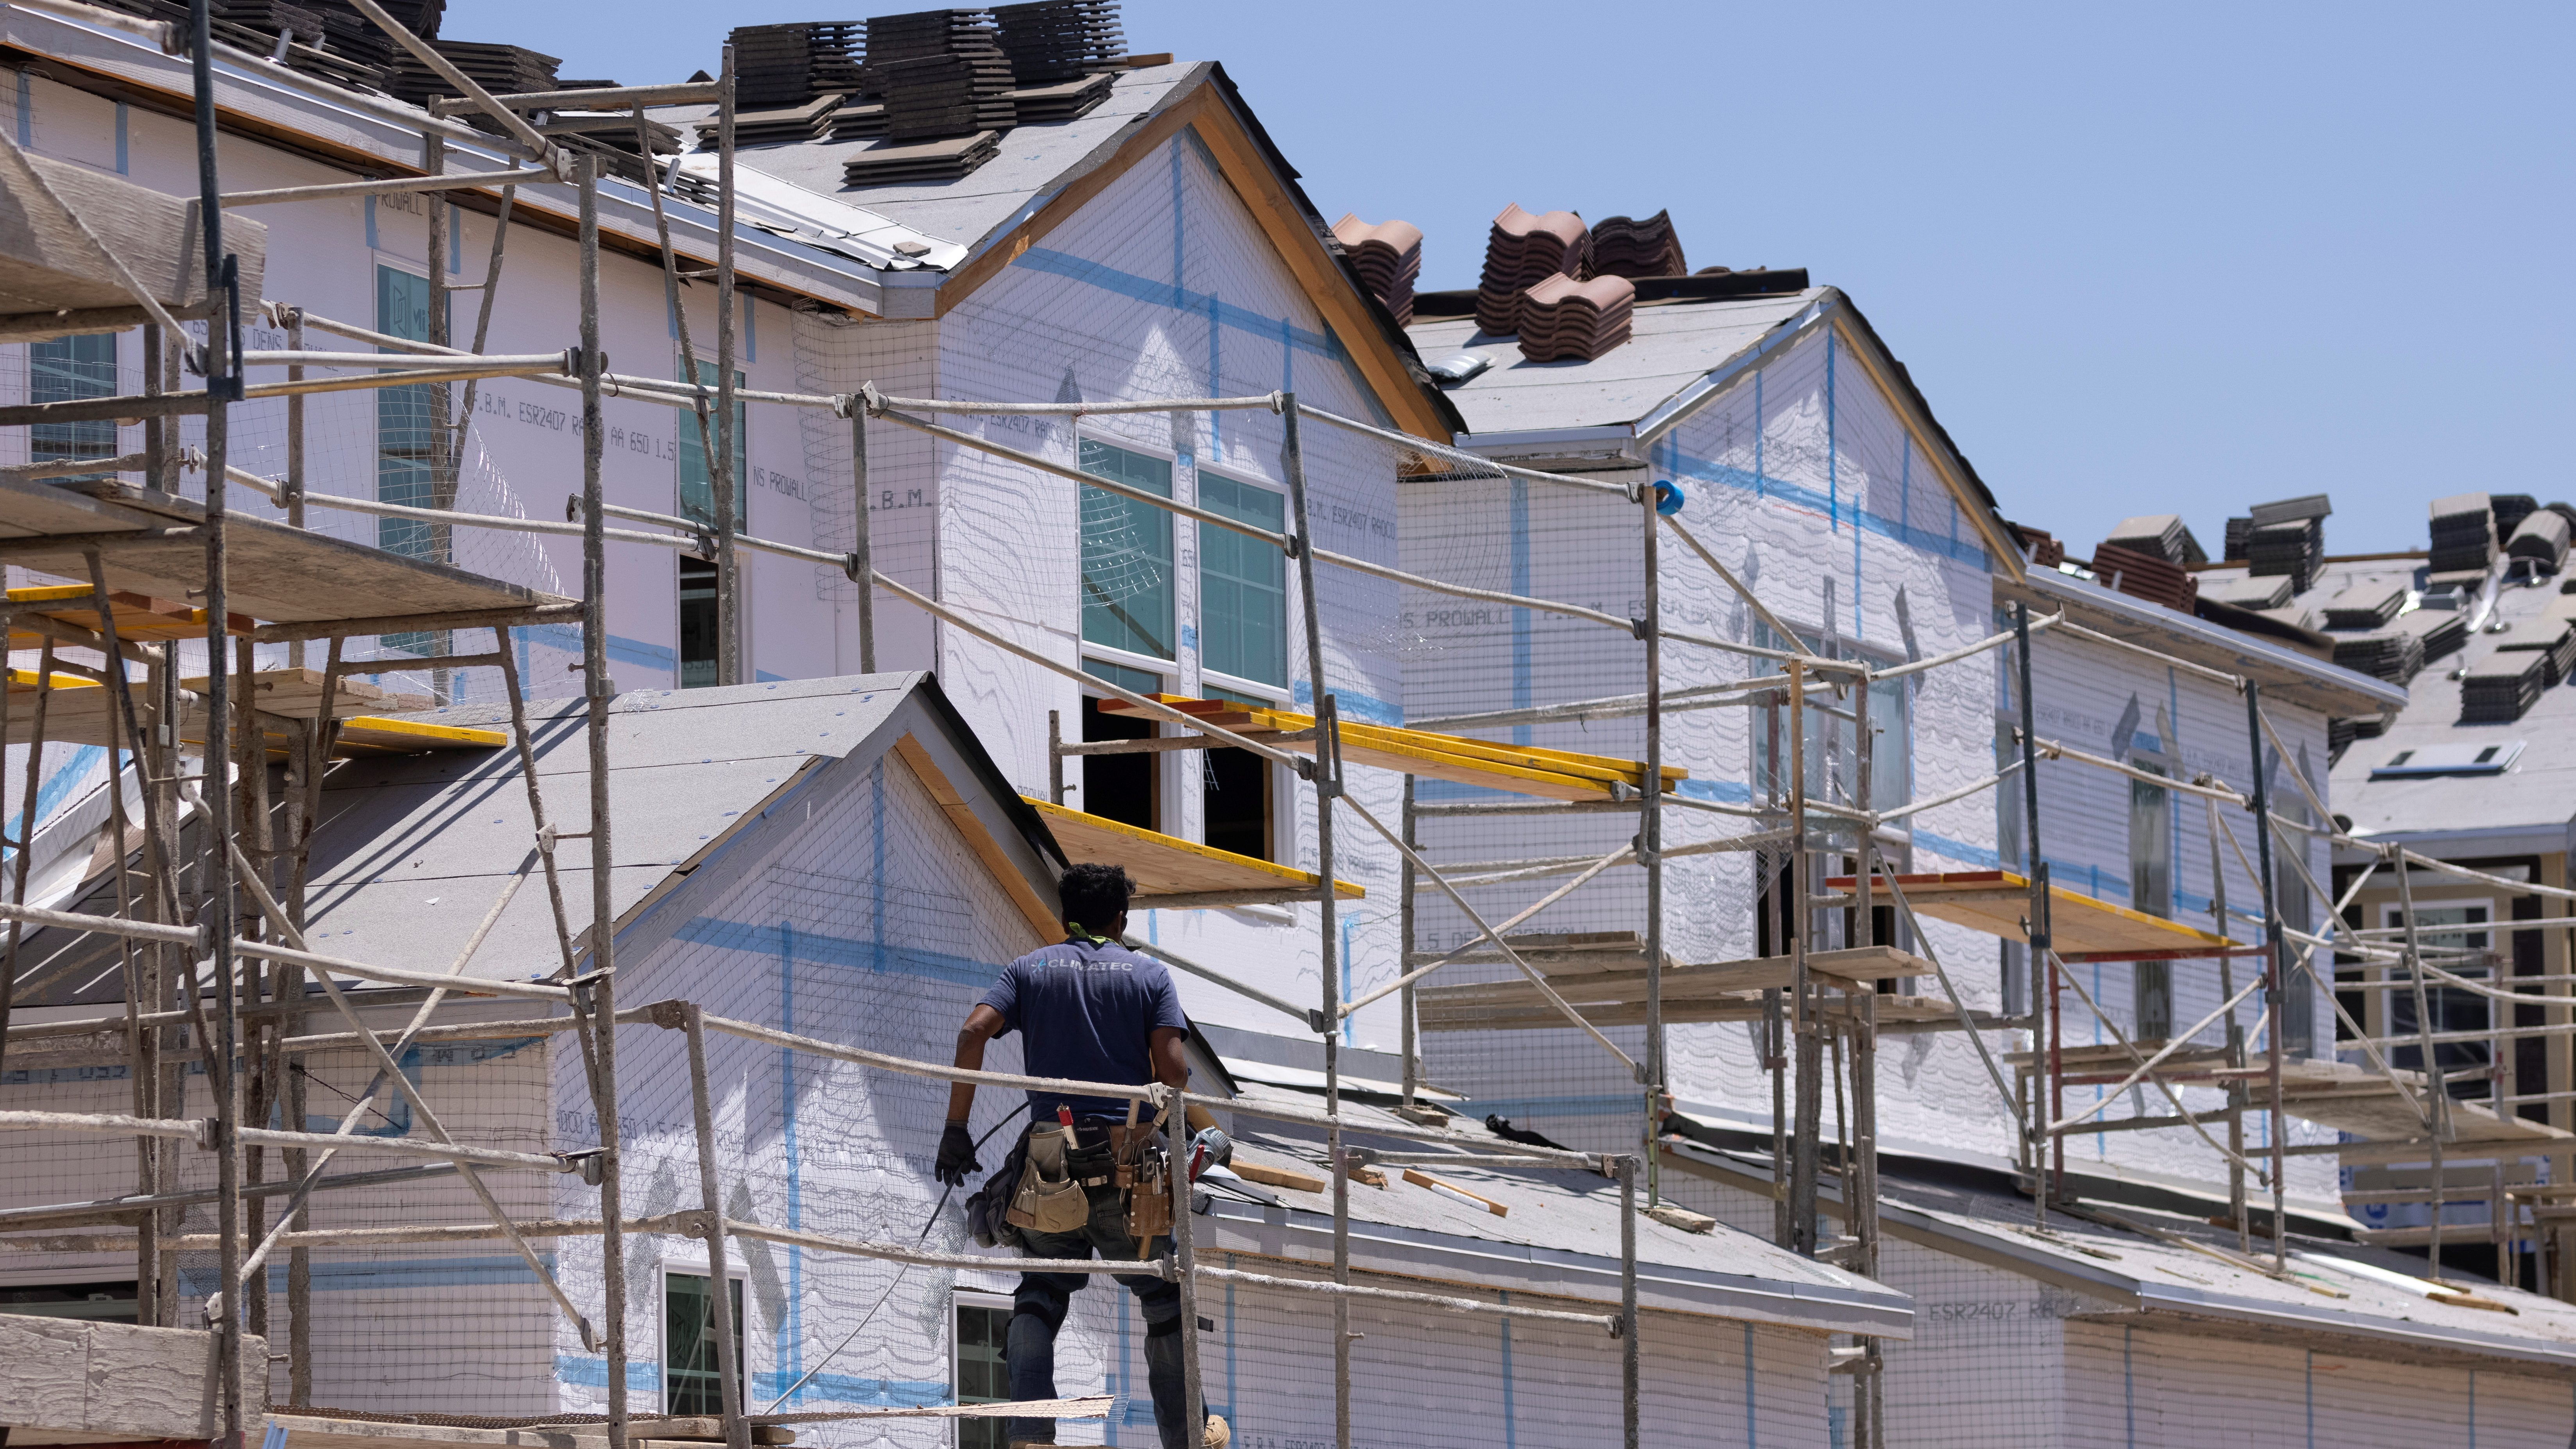 A construction worker stands on scaffolding in front of a house under construction.